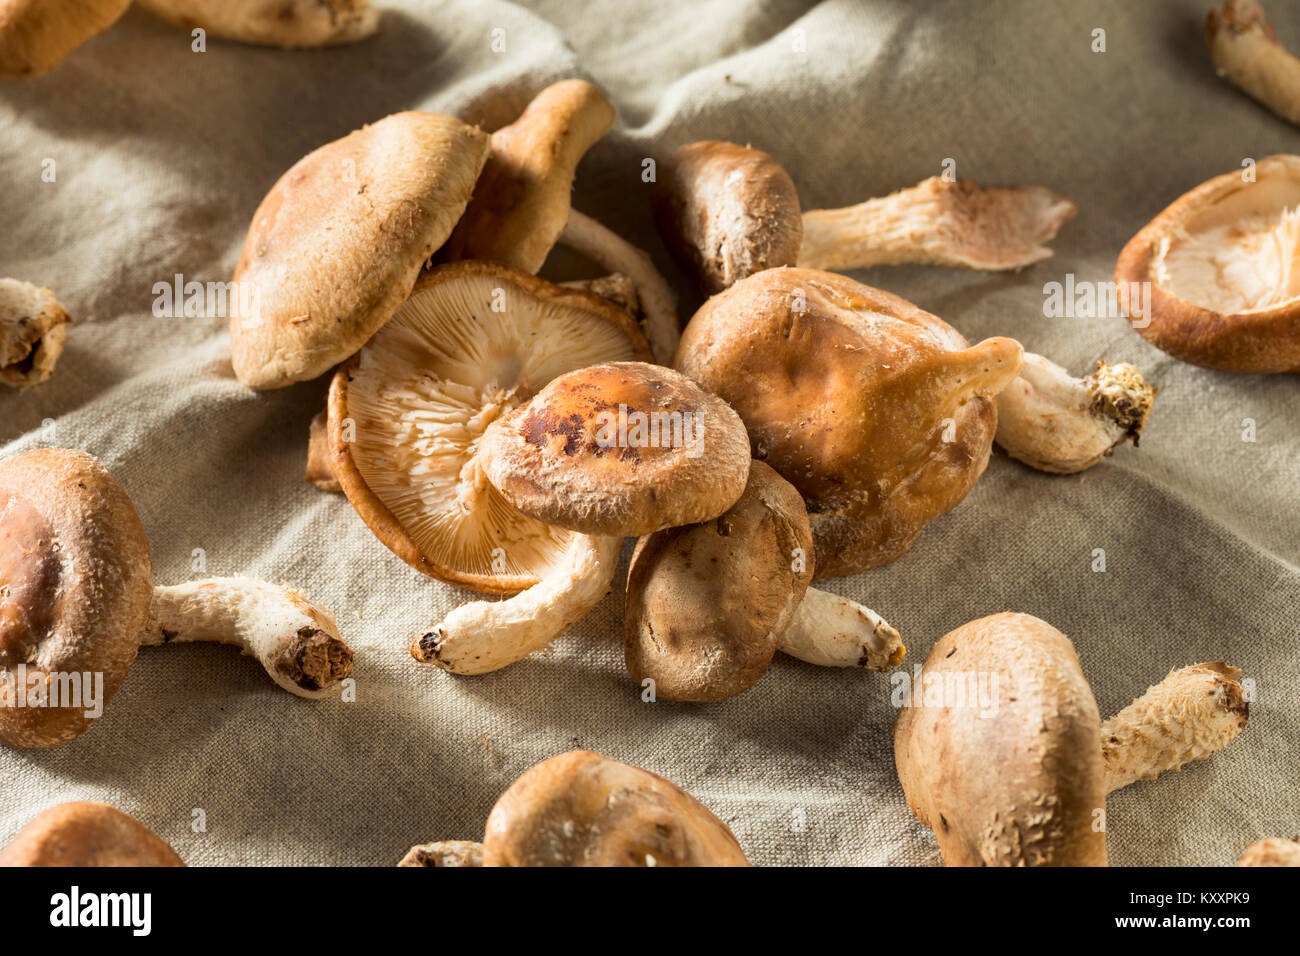 how to cook shiitake mushrooms in oven